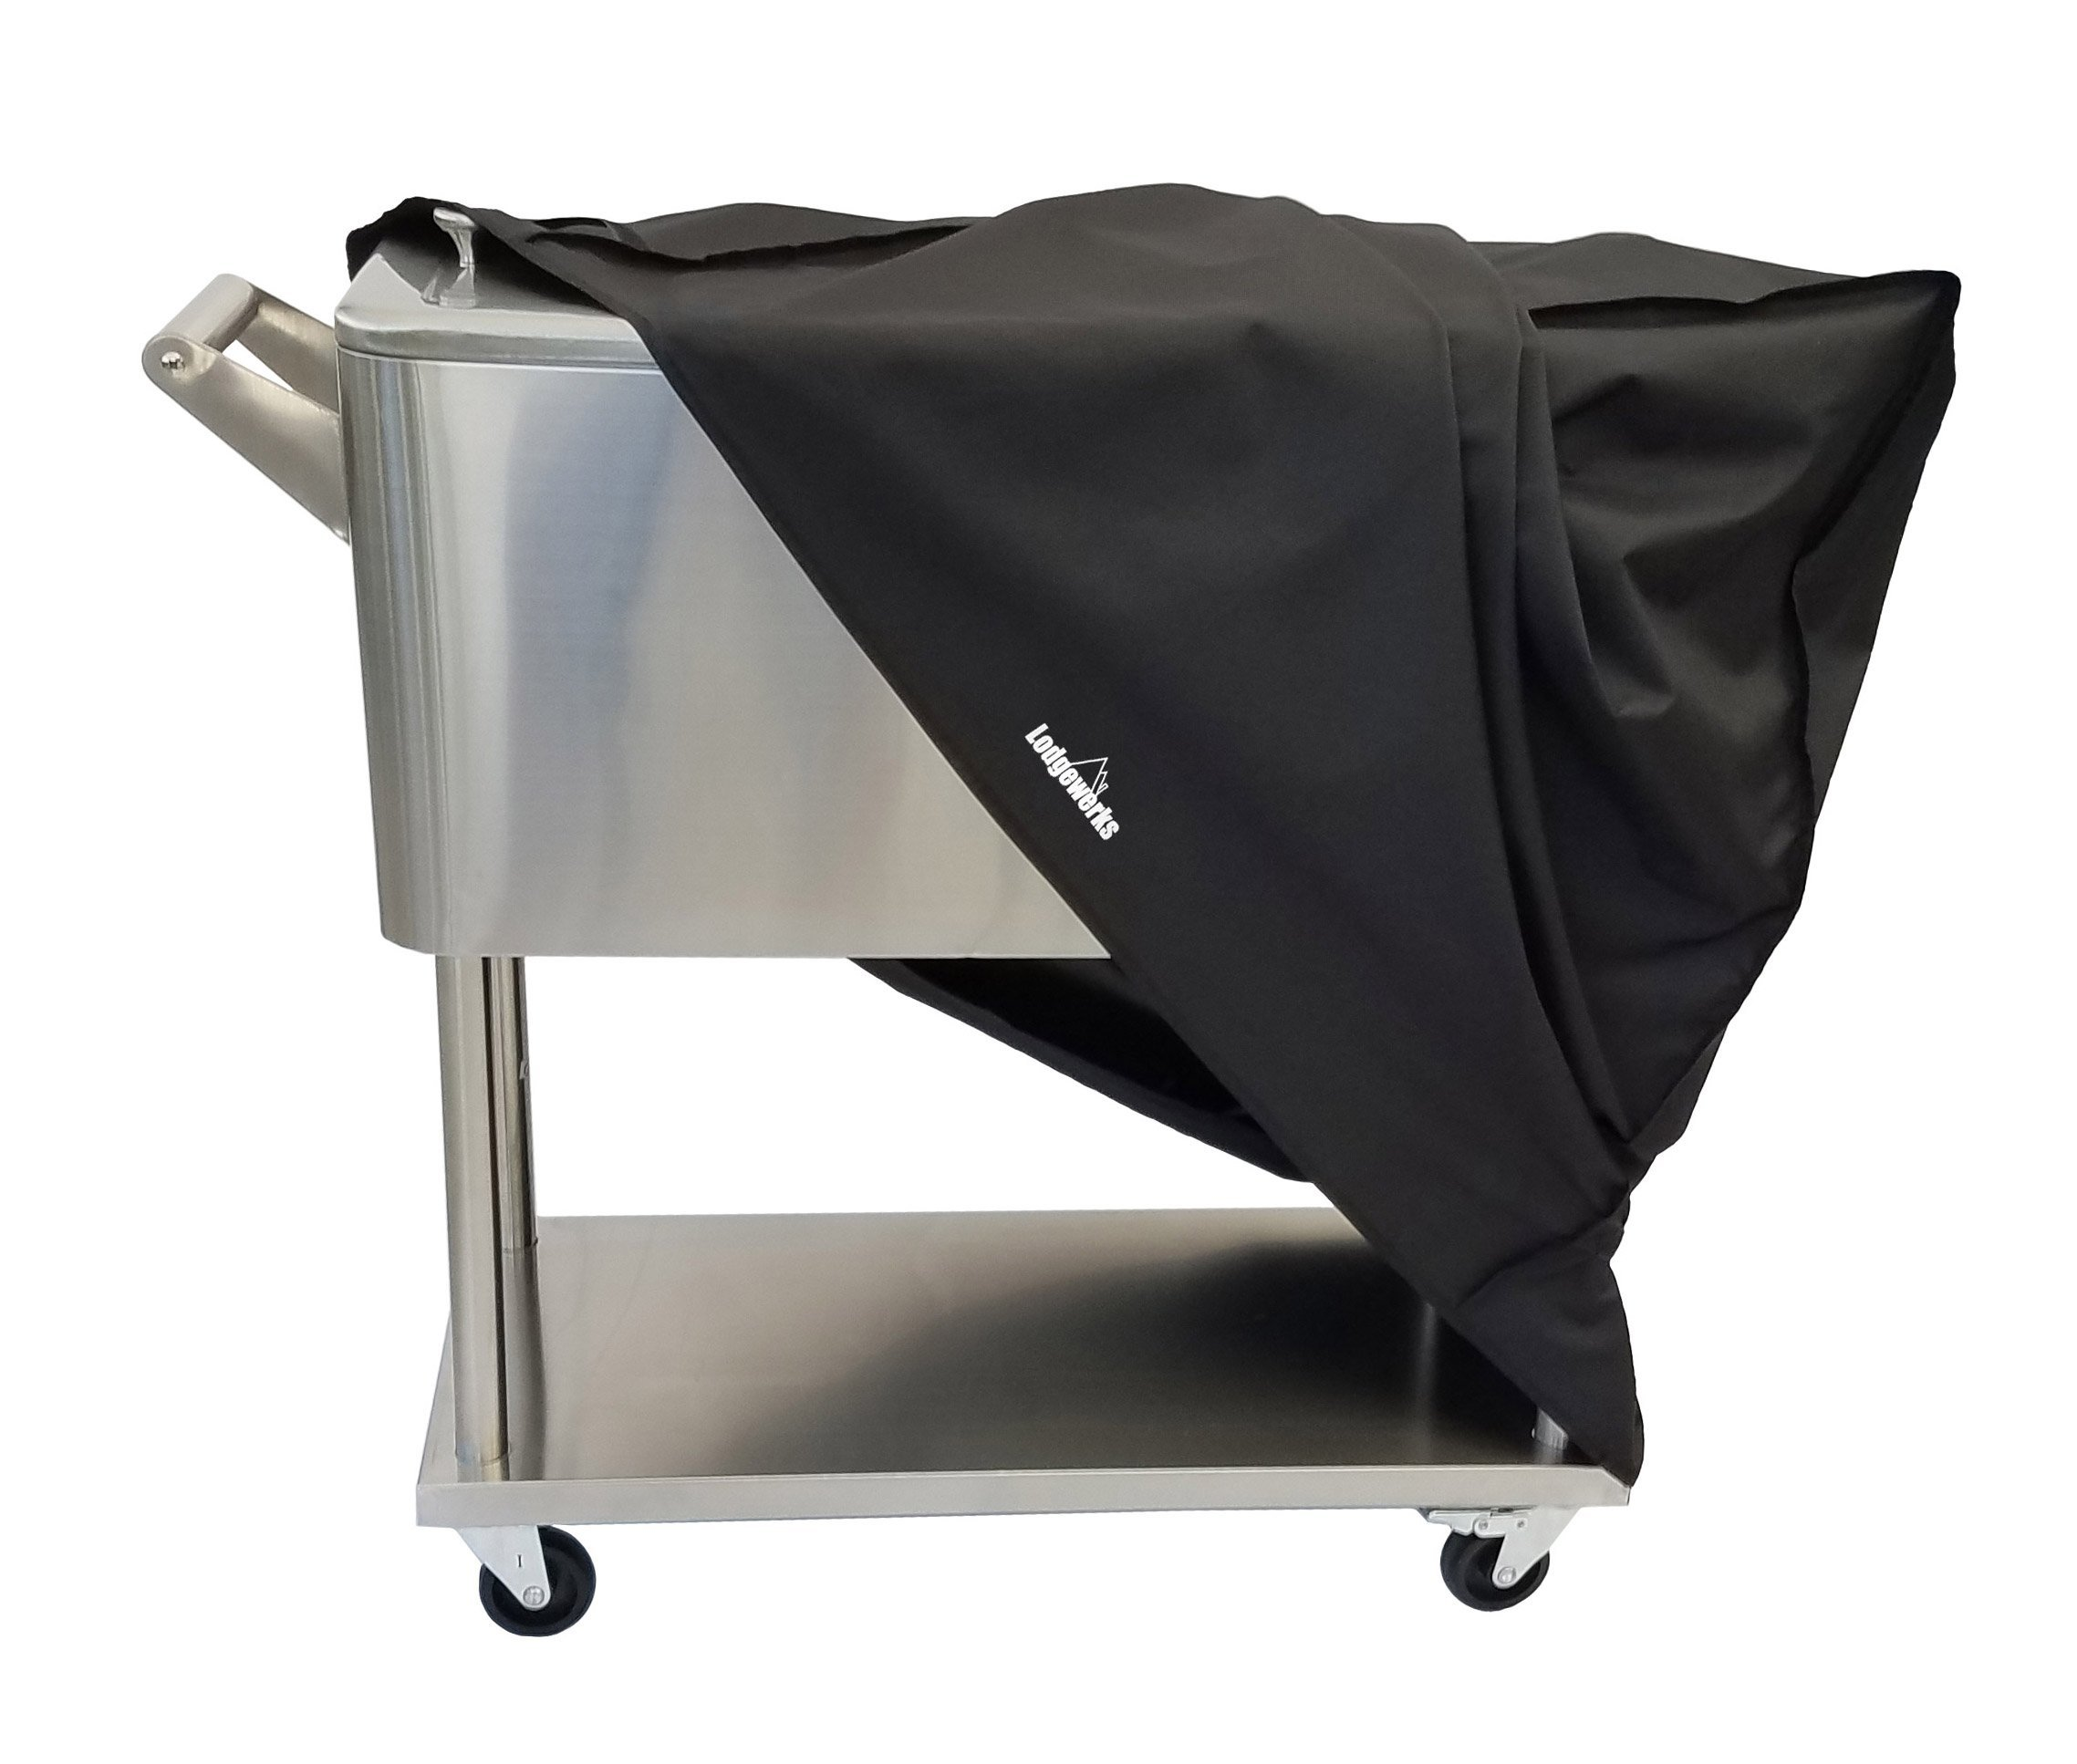 Cooler Cart Cover - Universal Fit For Most 80 QT Rolling Cooler (Patio Cooler On Wheels, Beverage Cart, Rolling Ice Chest, Party Cooler) Protective Cover, Water Proof, New 2018 by Lodgewerks